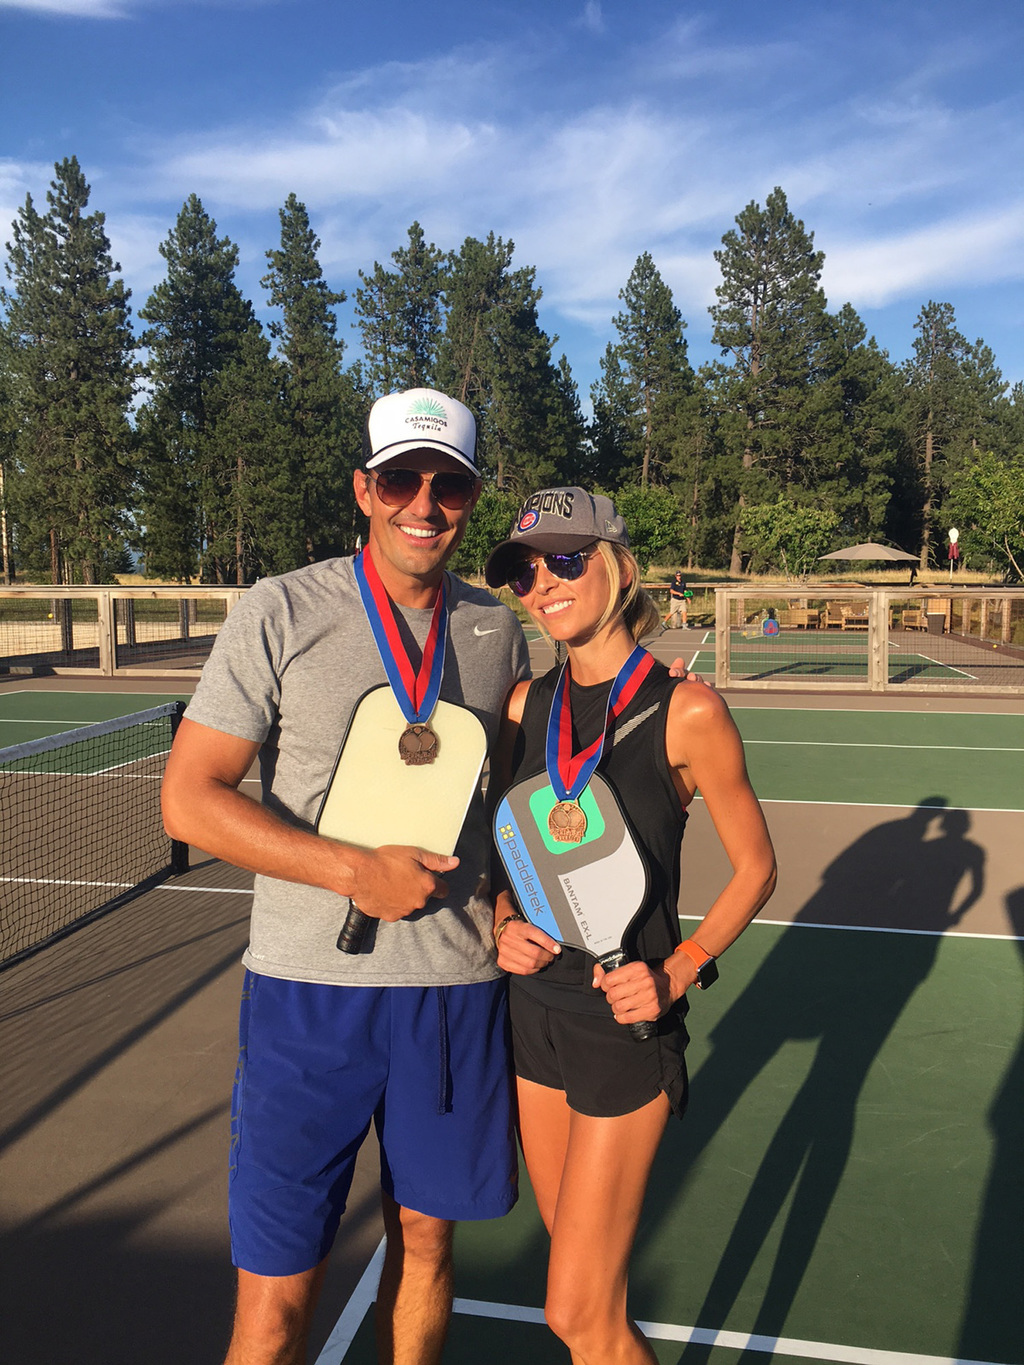 In this July 21, 2017 photo provided by Giuliana Rancic, Bill and Giuliana Rancic pose for a photo in Harrison, Idaho after winning a Mixed Doubles Pi...